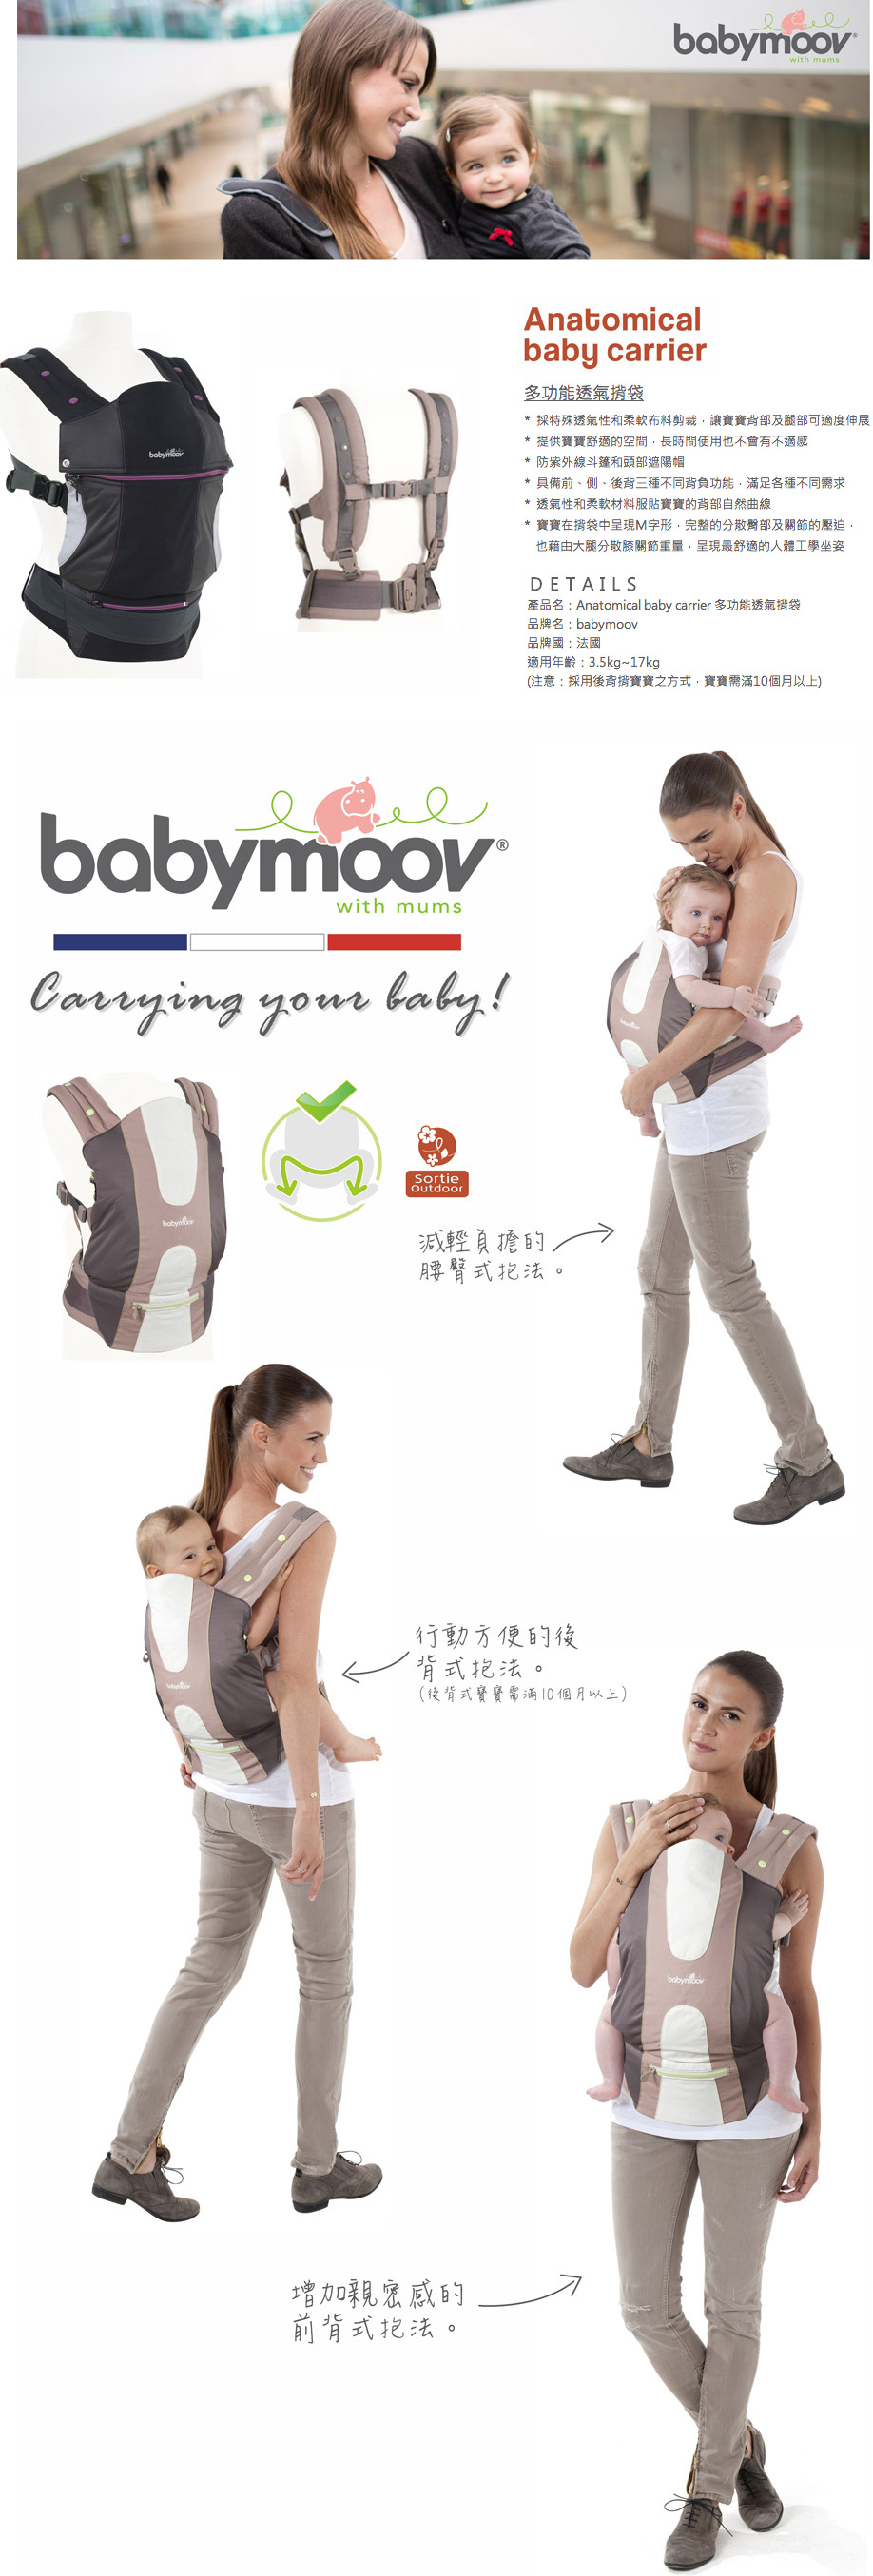 Babymoov-Anatomical-Baby-Carrier-info1